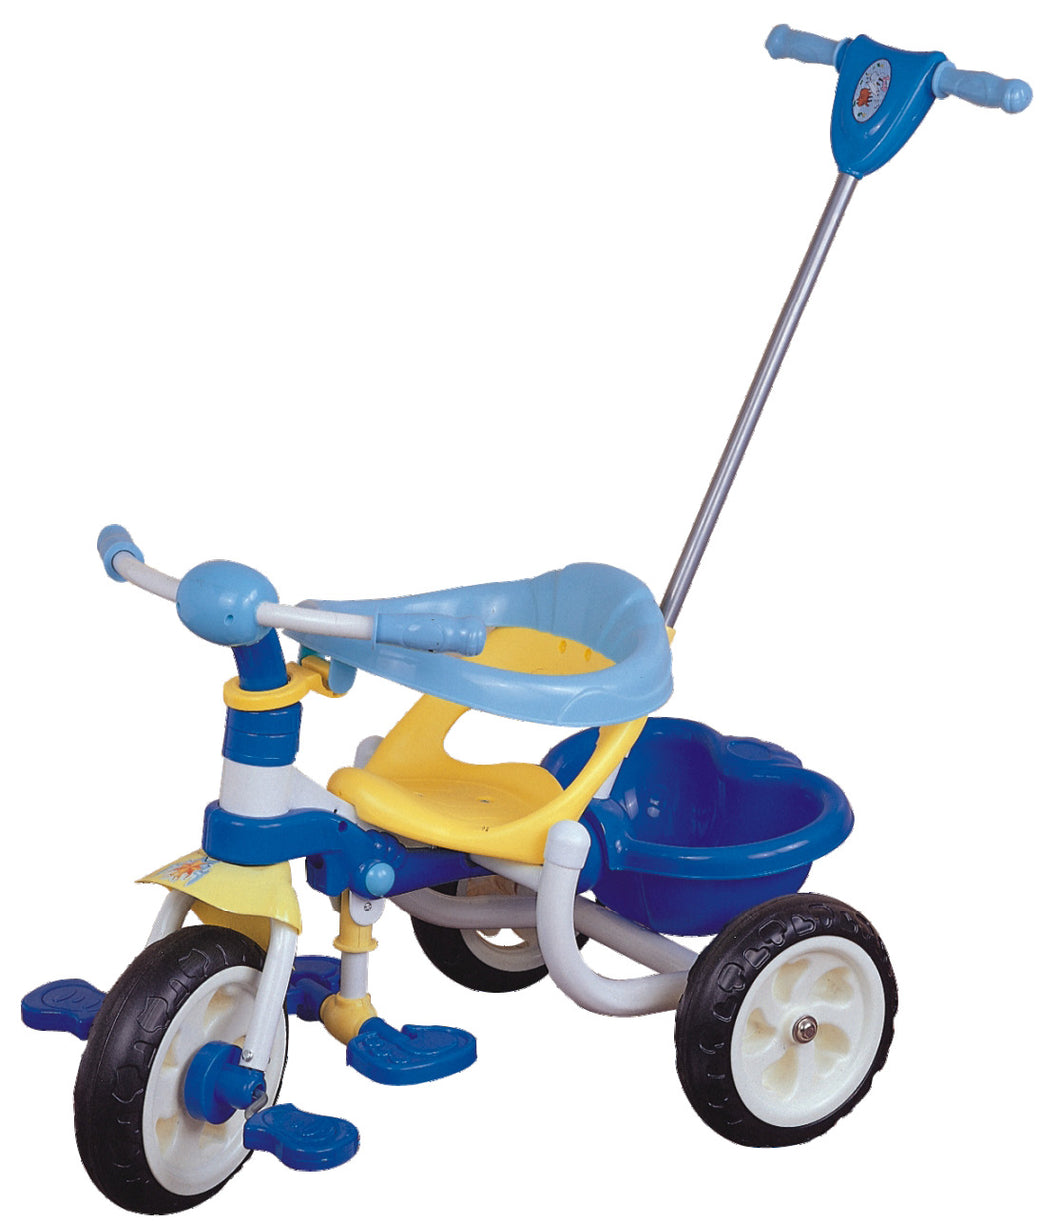 Peerless Ultimate Blue Super Trike